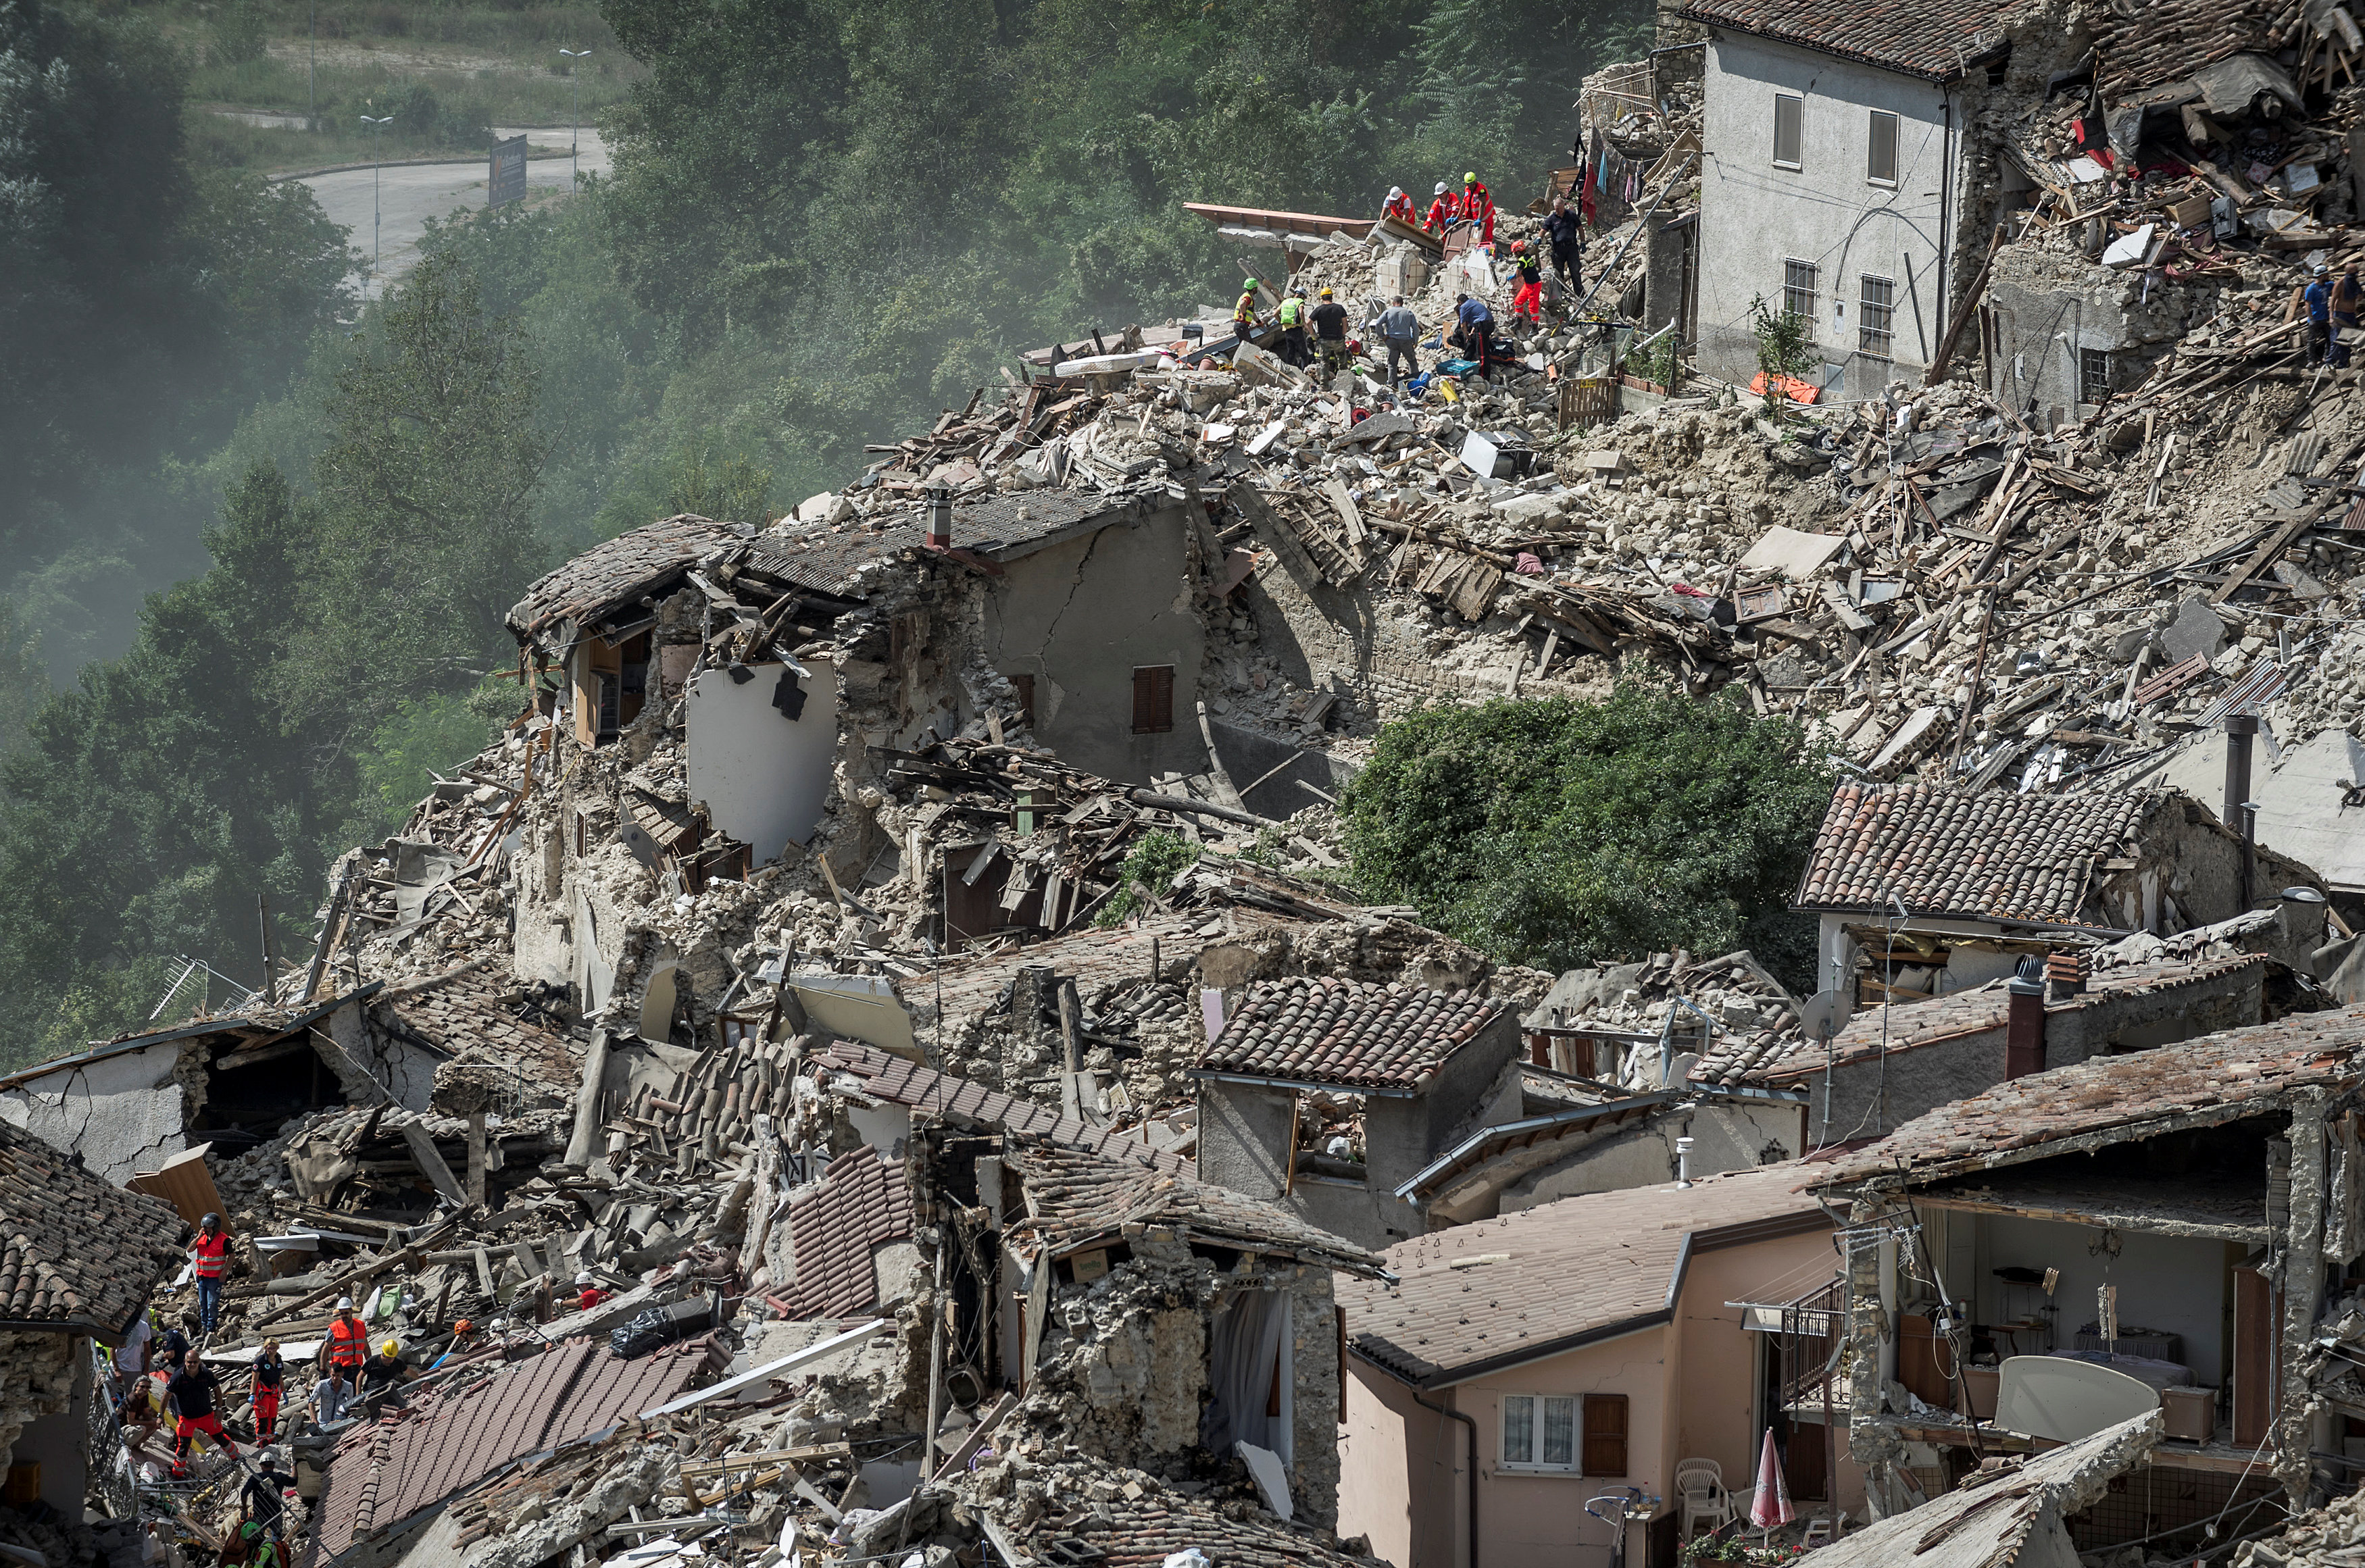 rescuers helping those in Italian quake